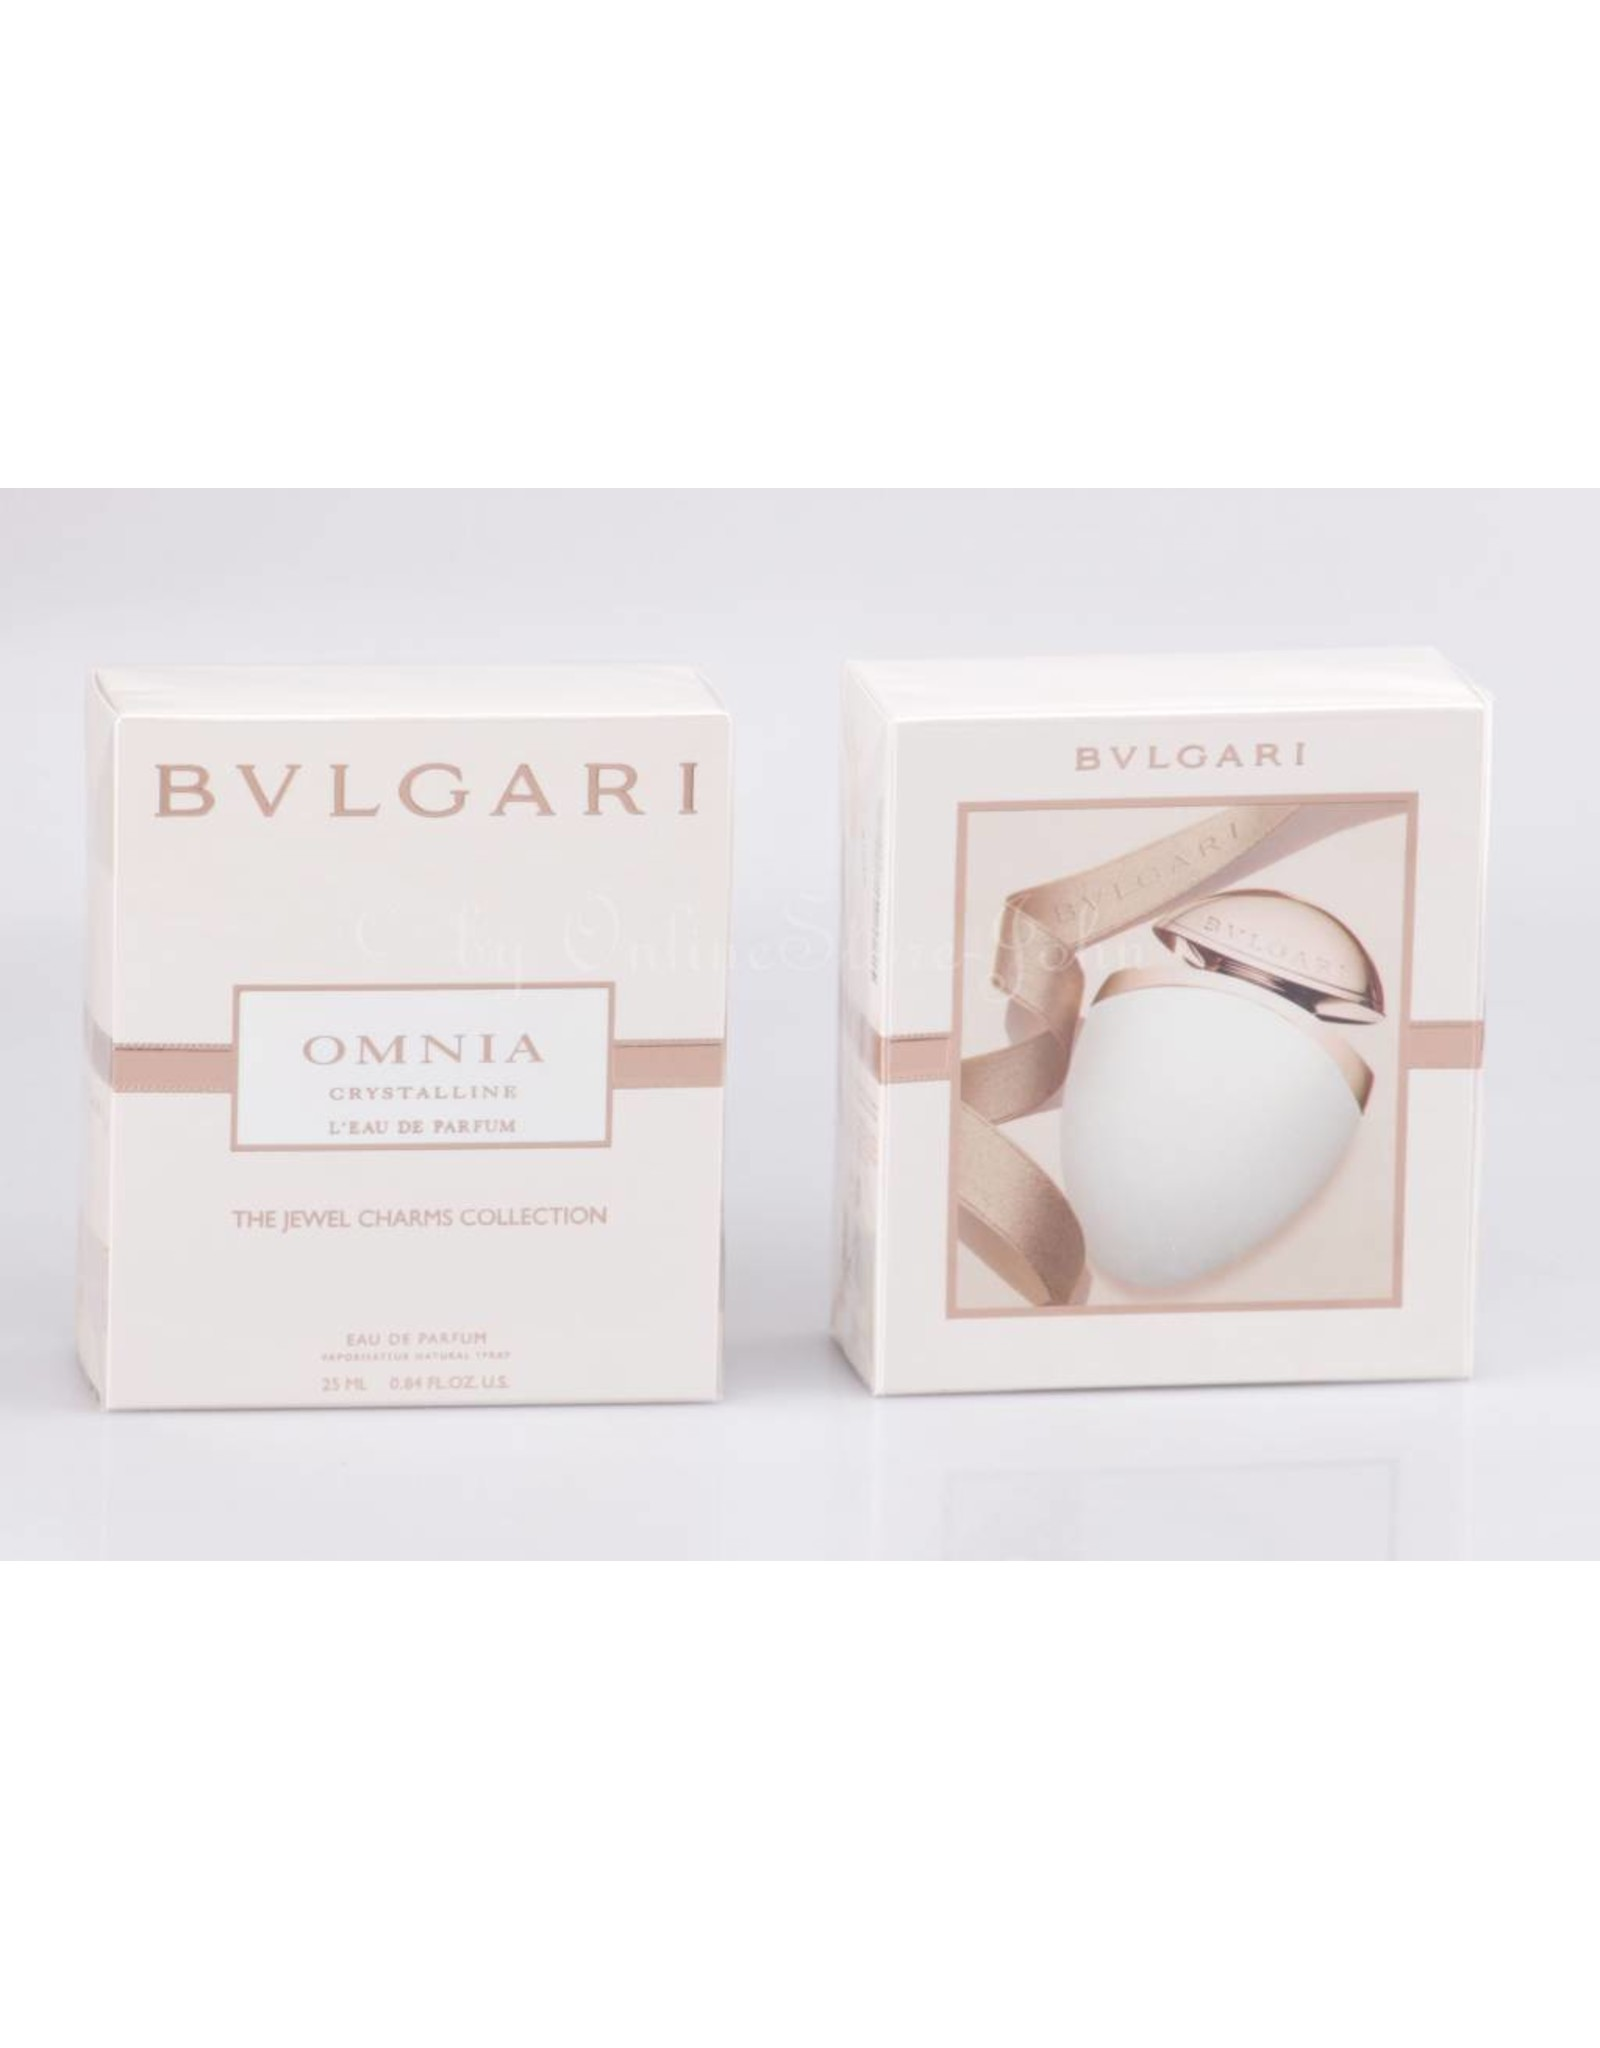 BVLGARI BVLGARI OMNIA CRYSTALINE THE JEWEL CHARMS COLLECTION